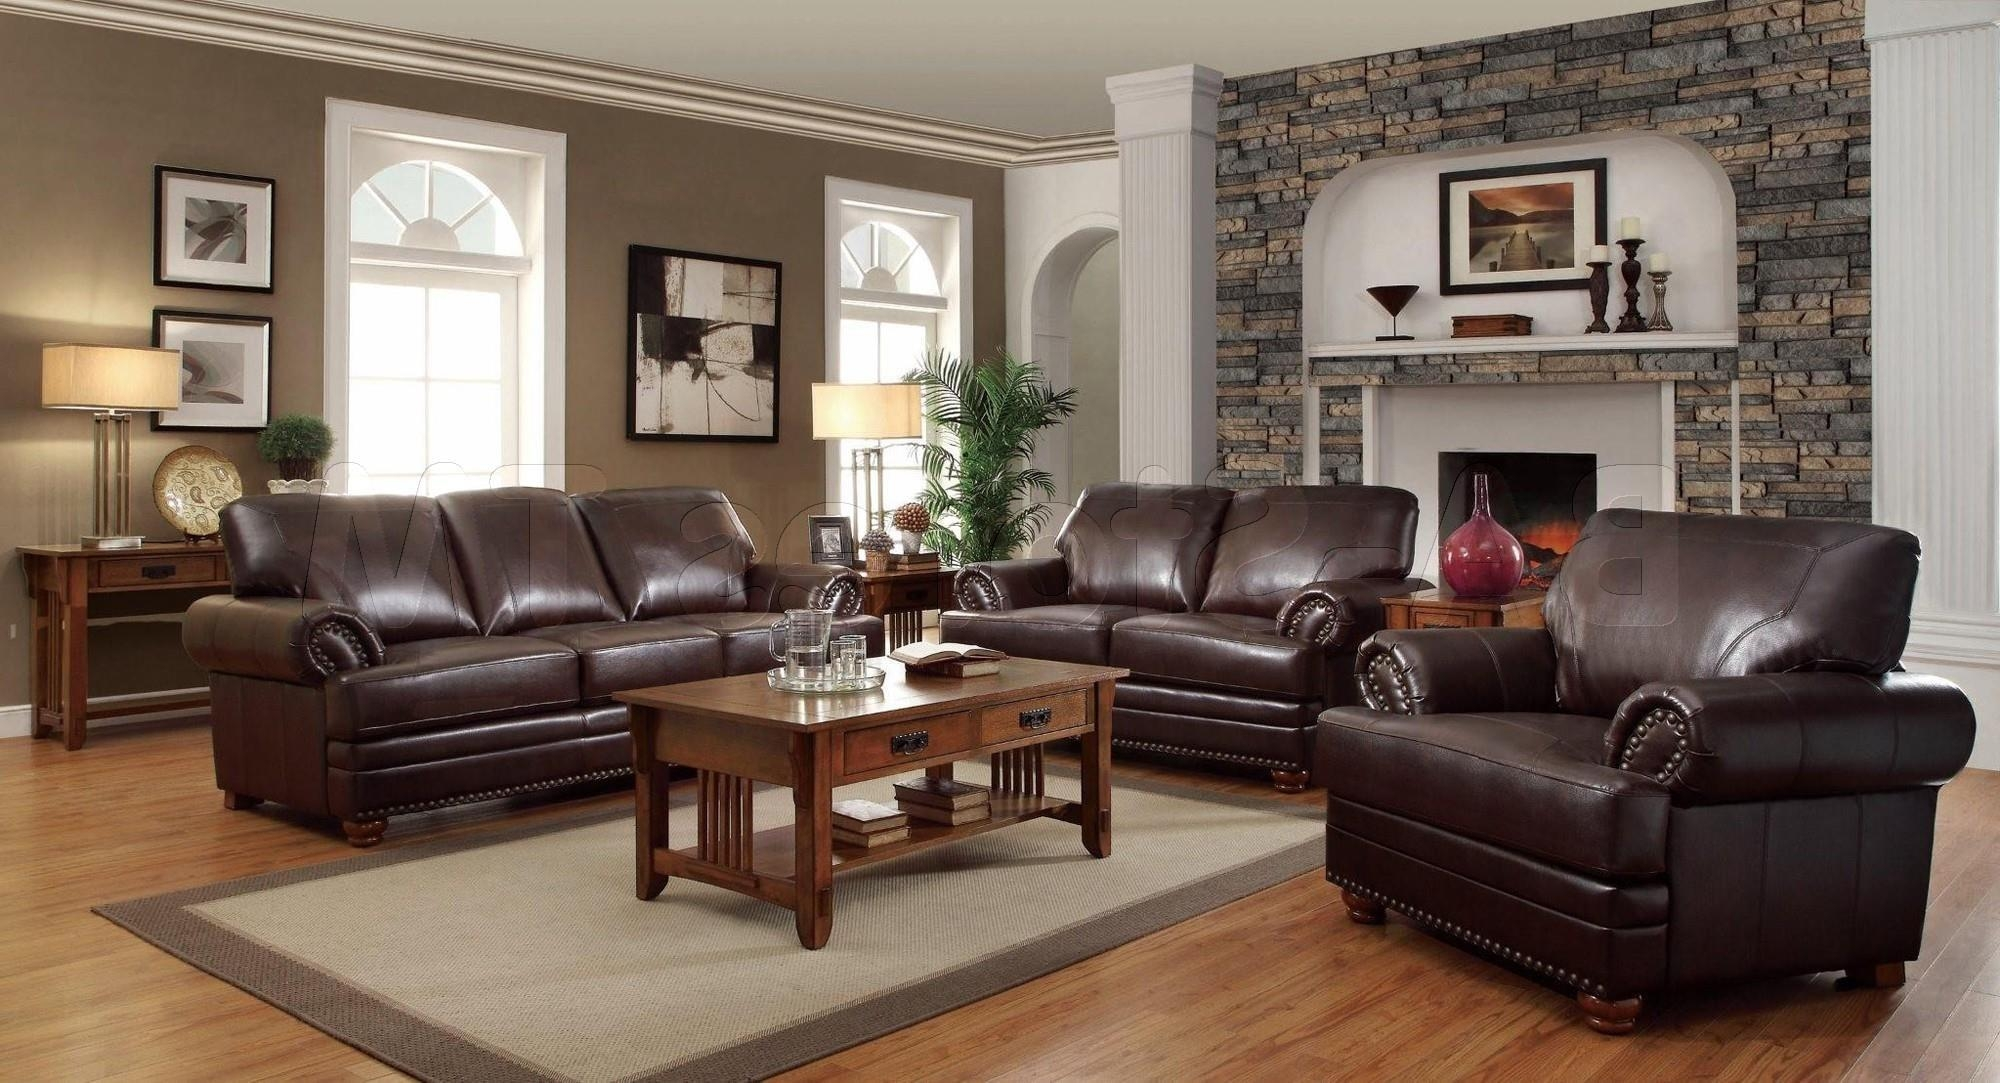 Awesome Decorating Ideas For Living Rooms With Brown Leather Pertaining To Brown Sofas Decorating (Image 1 of 20)